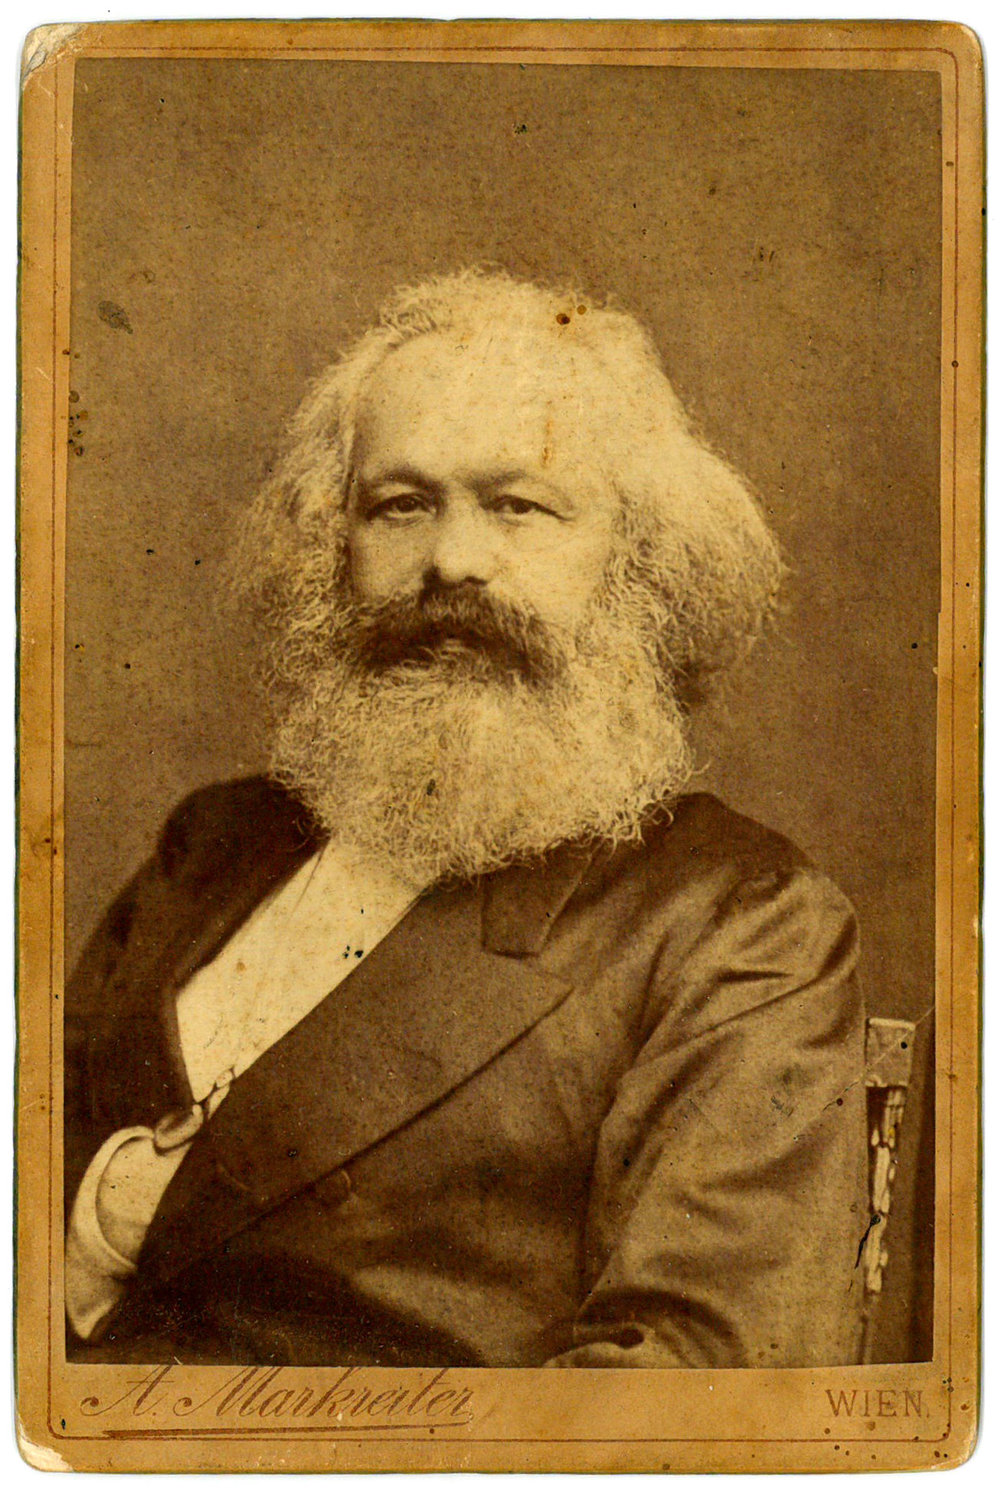 Karl Marx, philosopher and economist (1818–1883).   Portrait photograph.